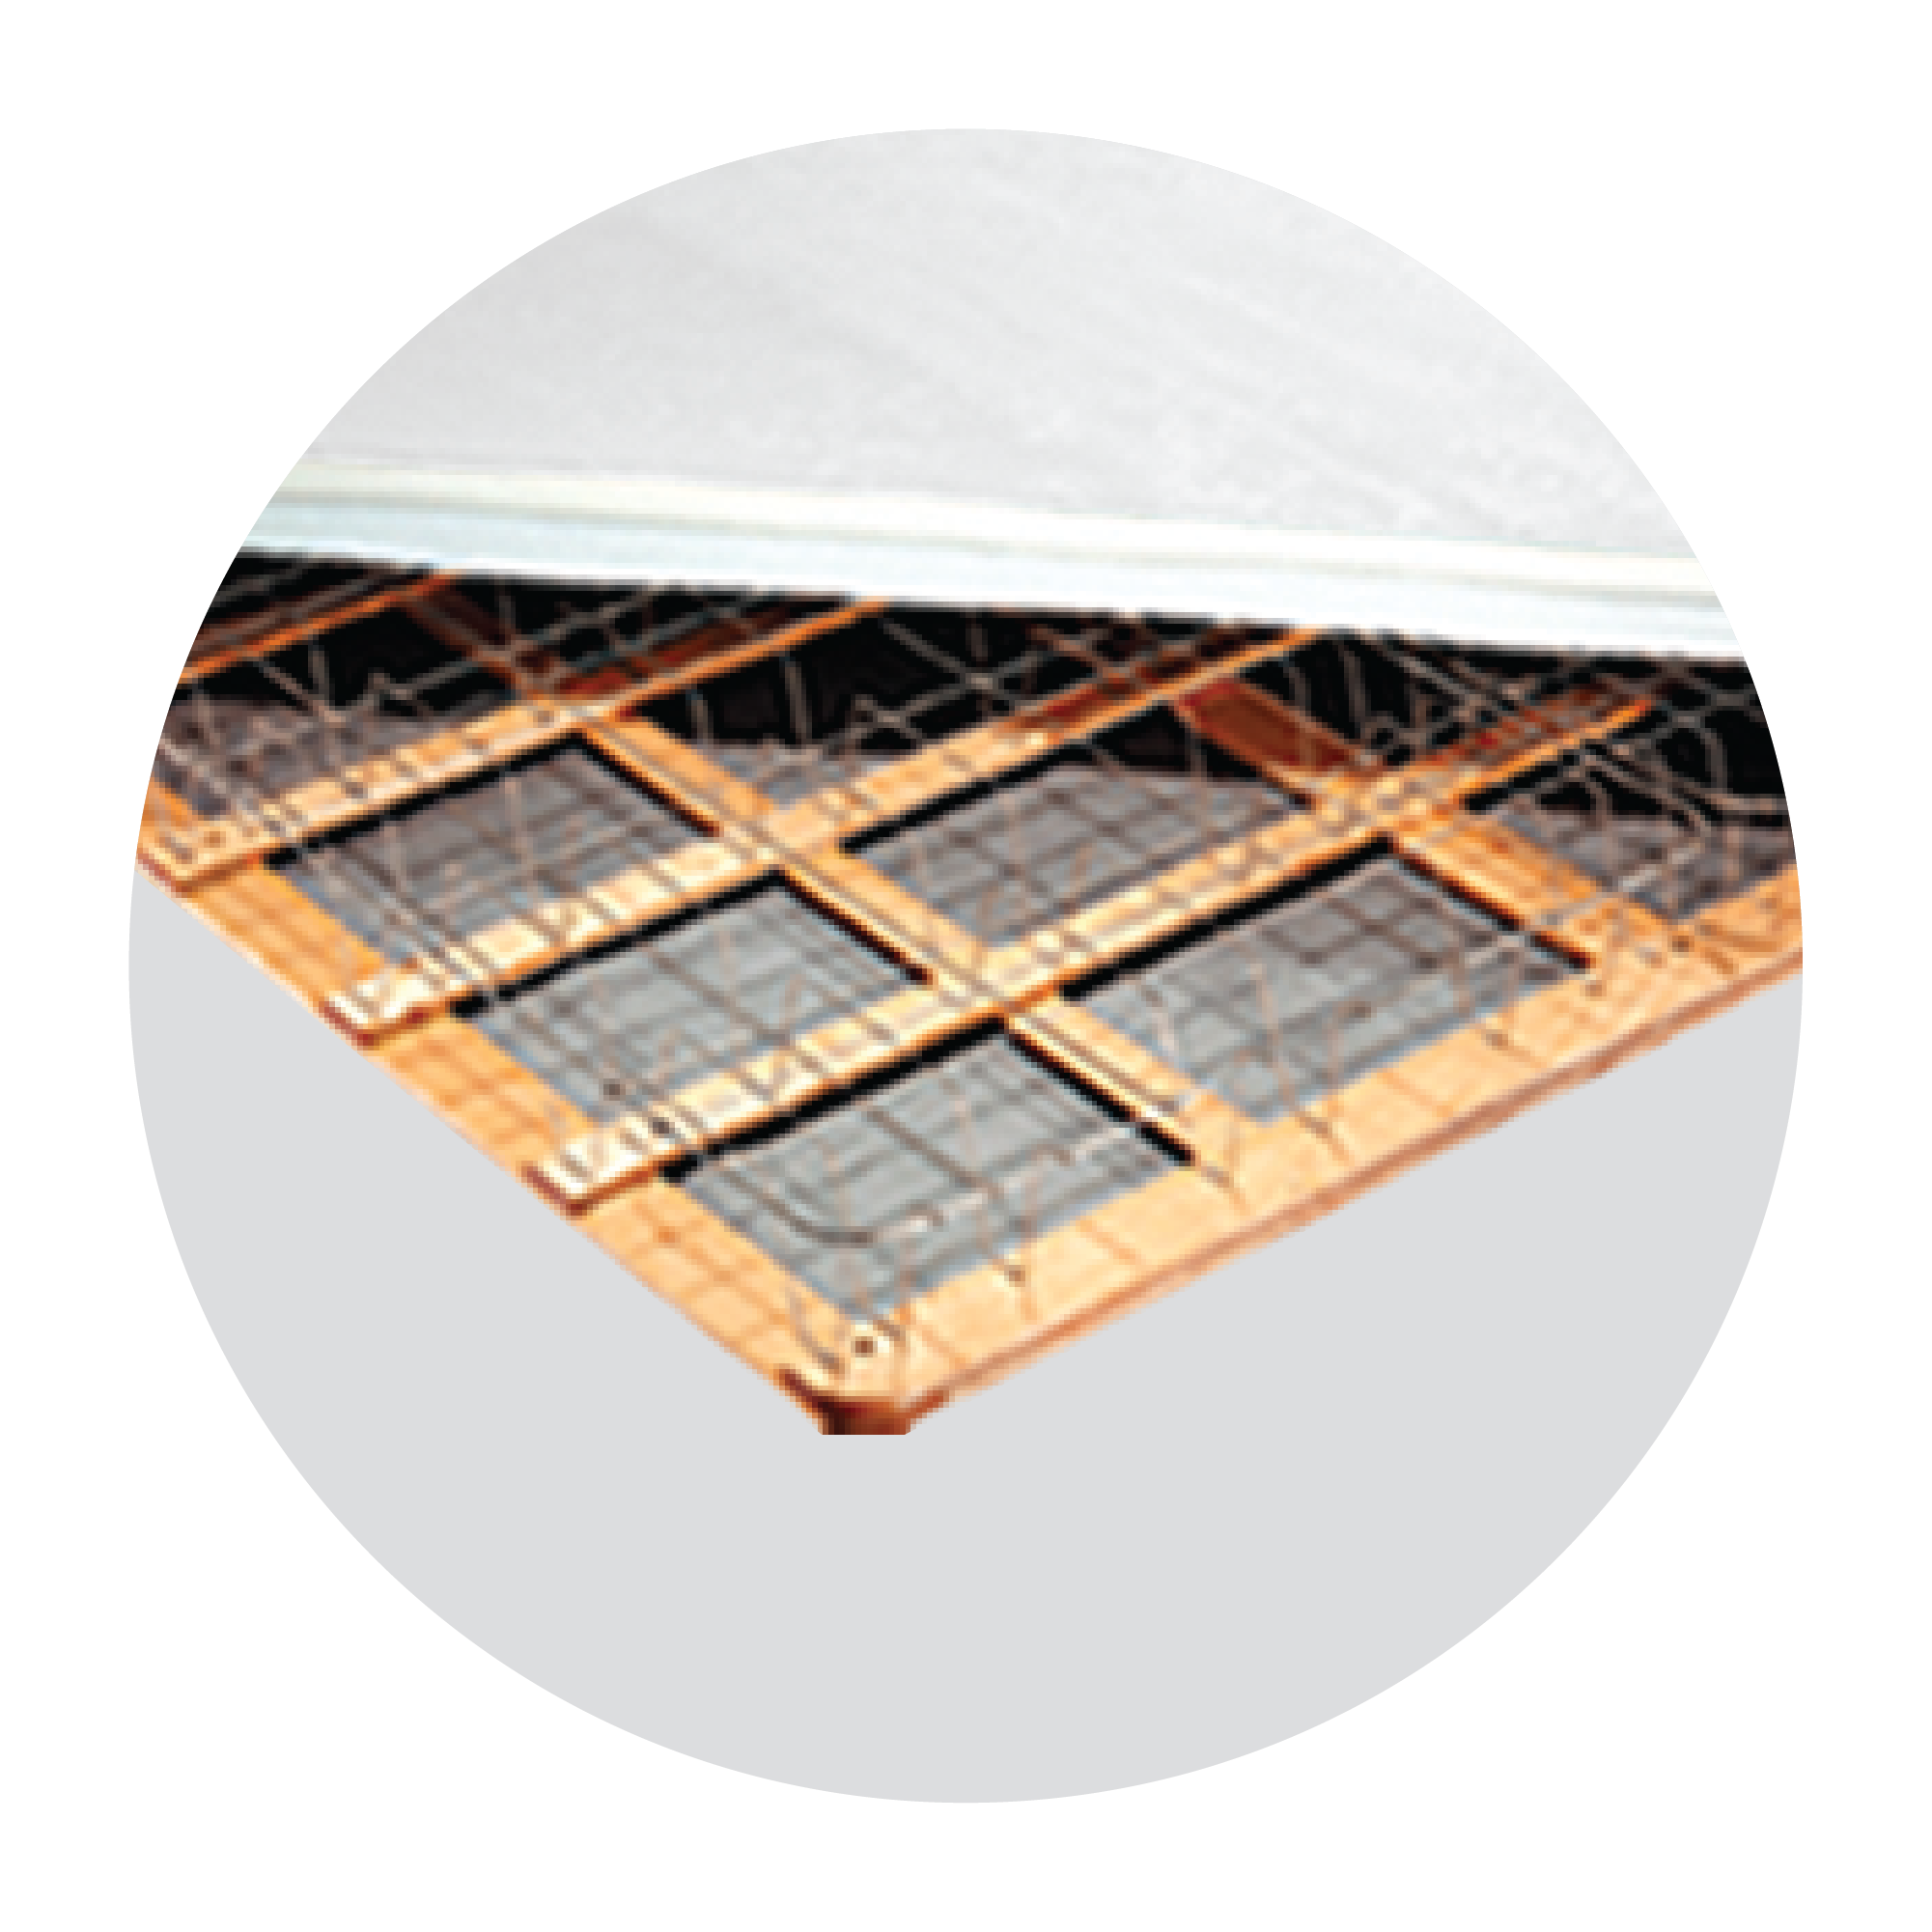 A series of U-shaped supports are welded to the springs' border wire and cross-support grid, then secured at the wooden (made of durable Pine) base. Providing you with comfortable, even support for your Serta® mattress.